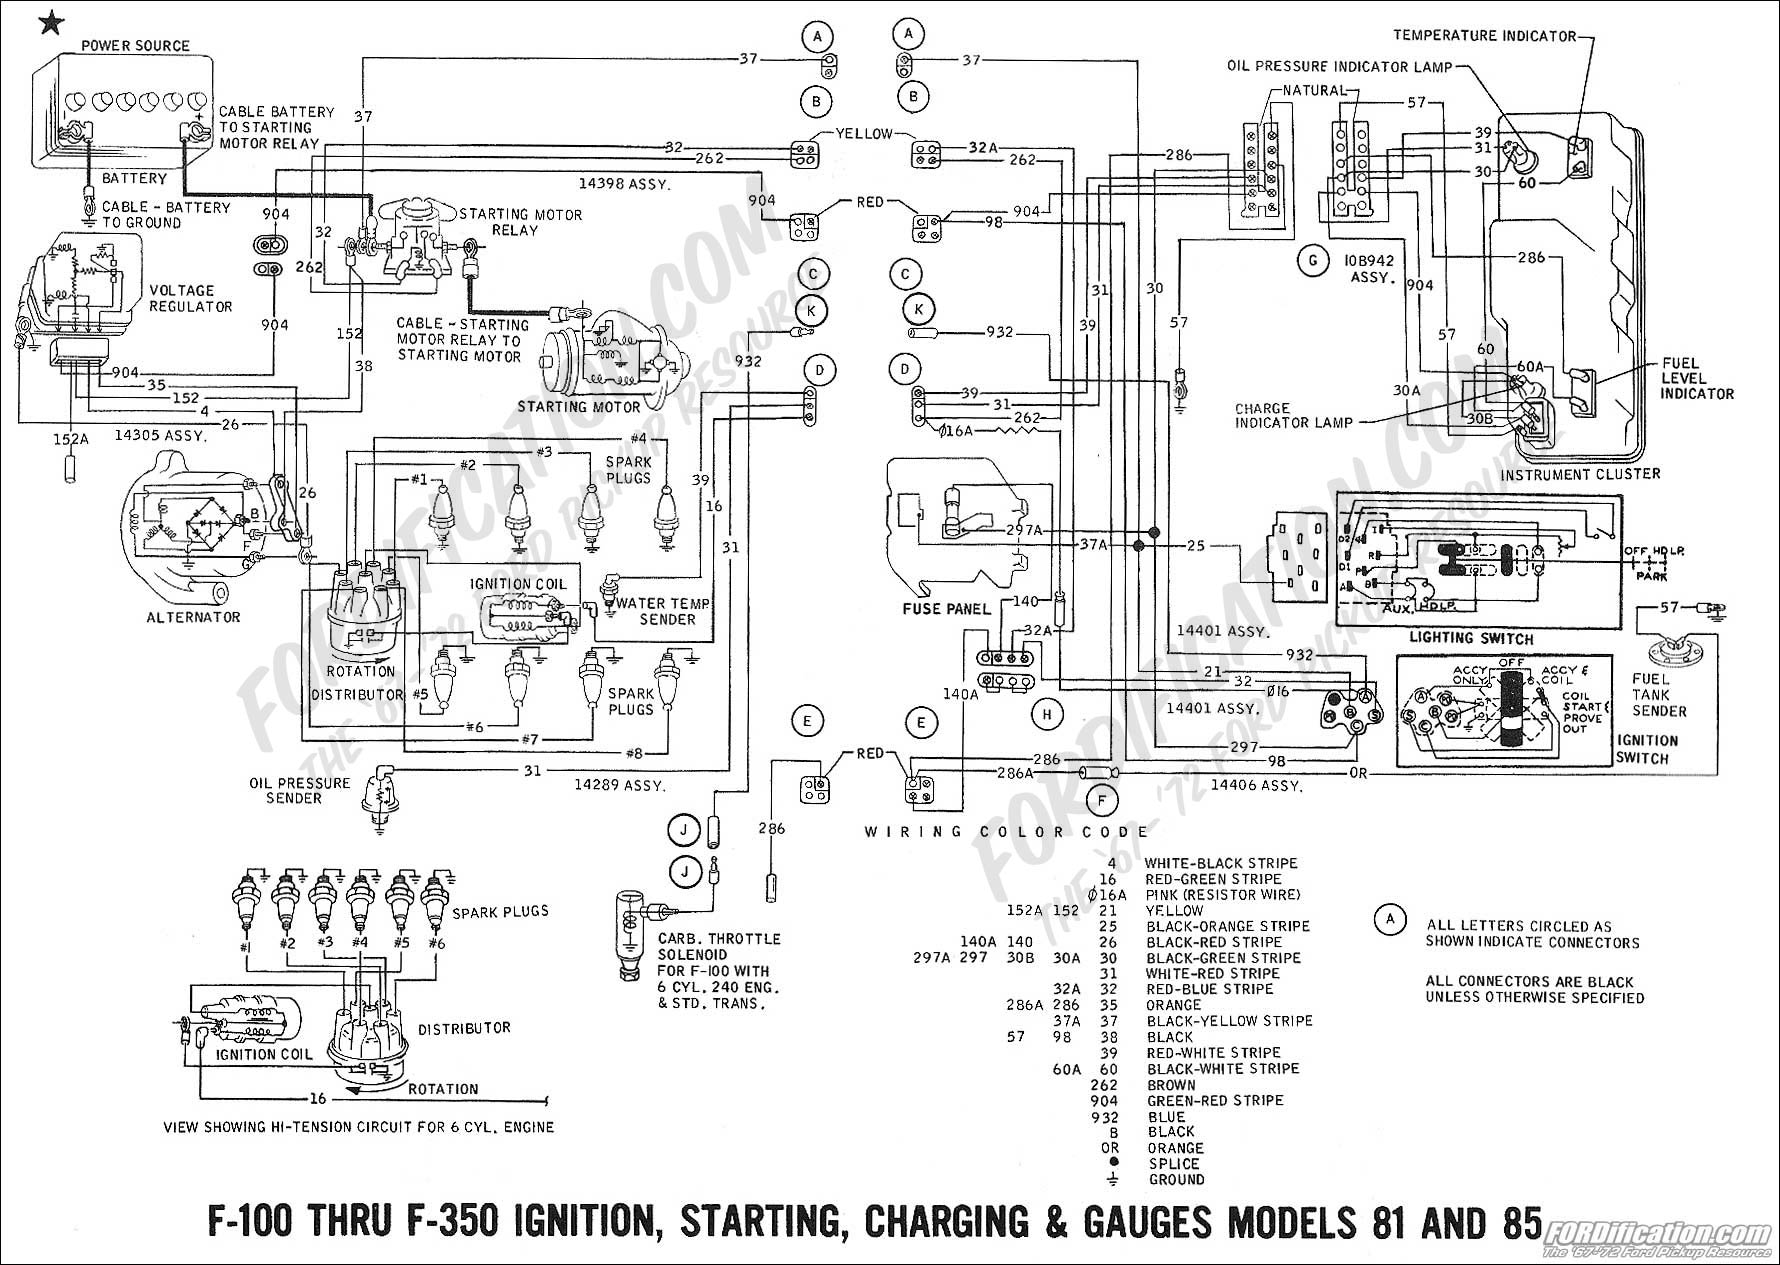 2006 mustang turn signal wiring diagram trusted wiring diagrams u2022 rh reeve carney com